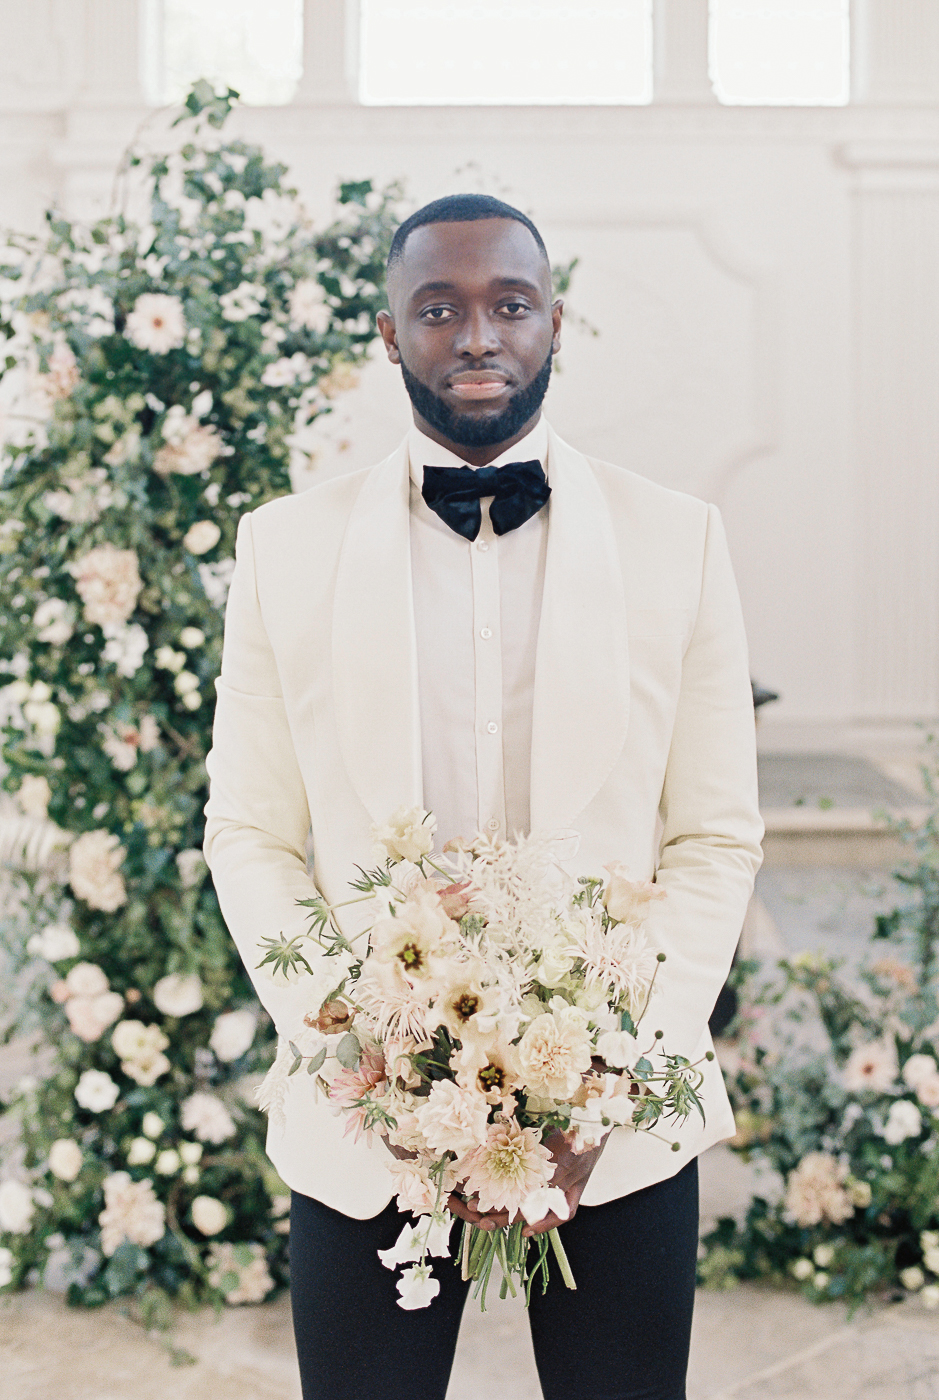 the groom holding brides bouquet